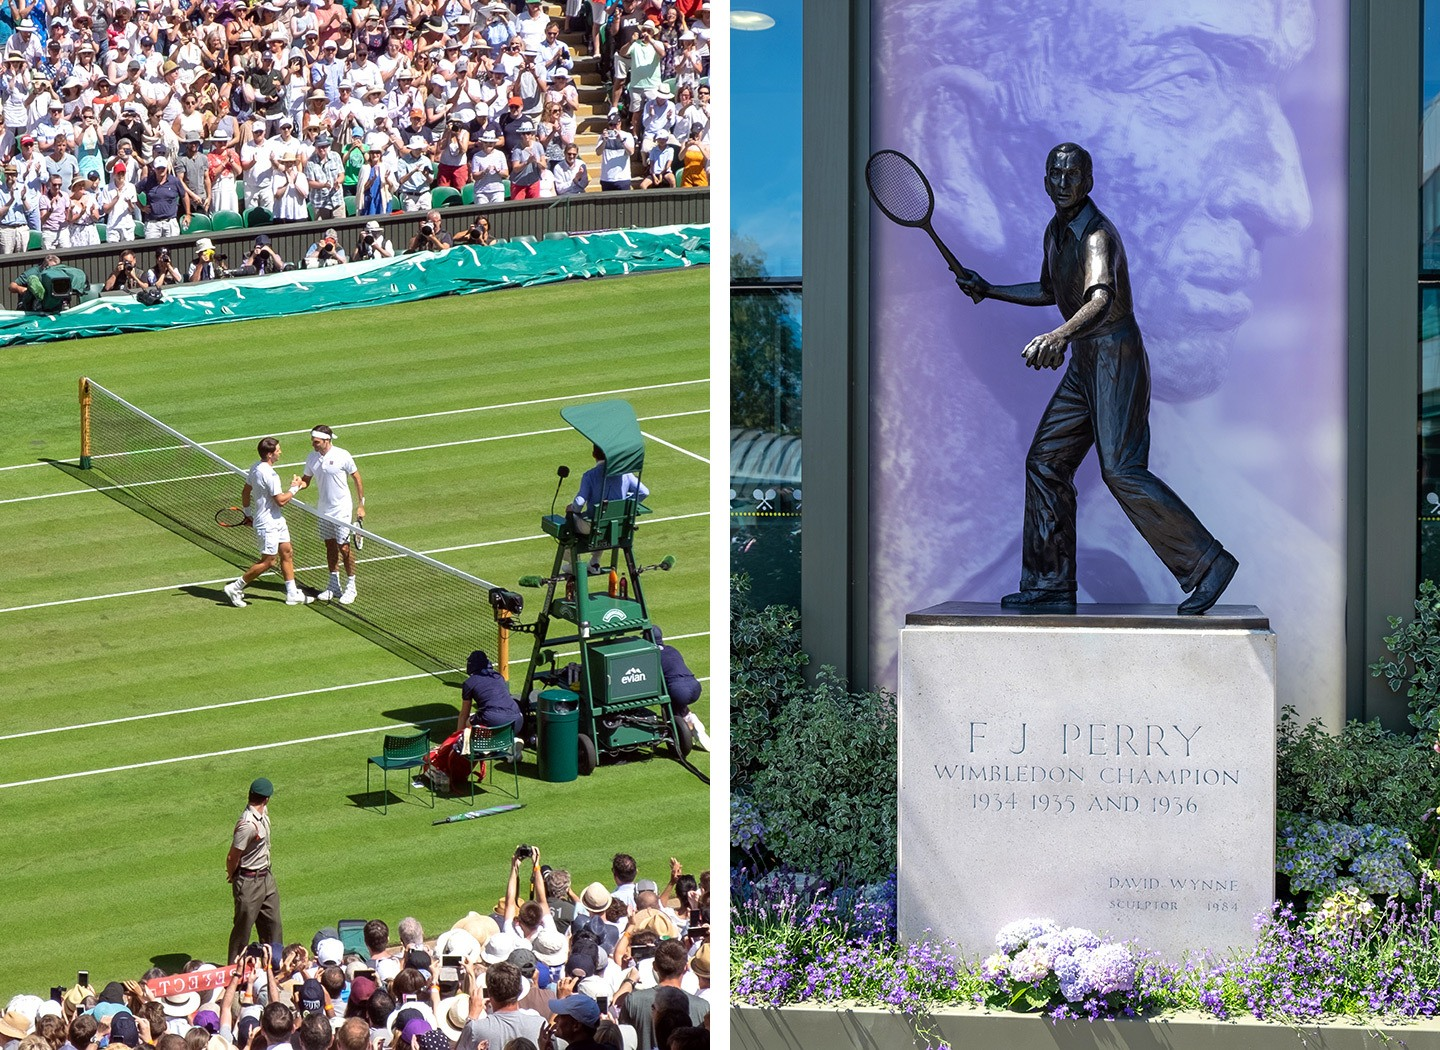 Centre court action and Fred Perry statue at Wimbledon